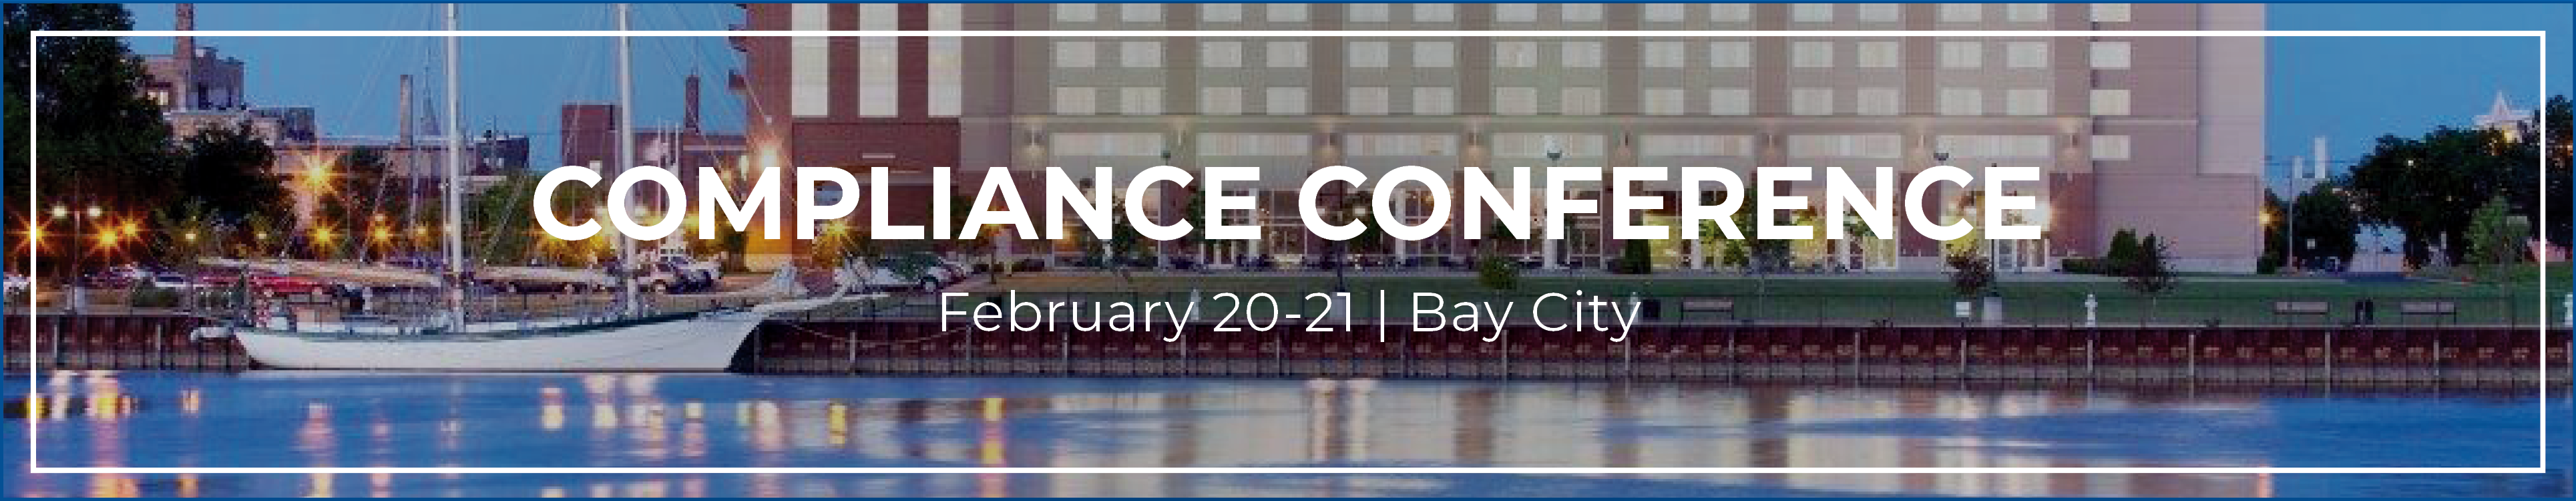 2019 Compliance Conference